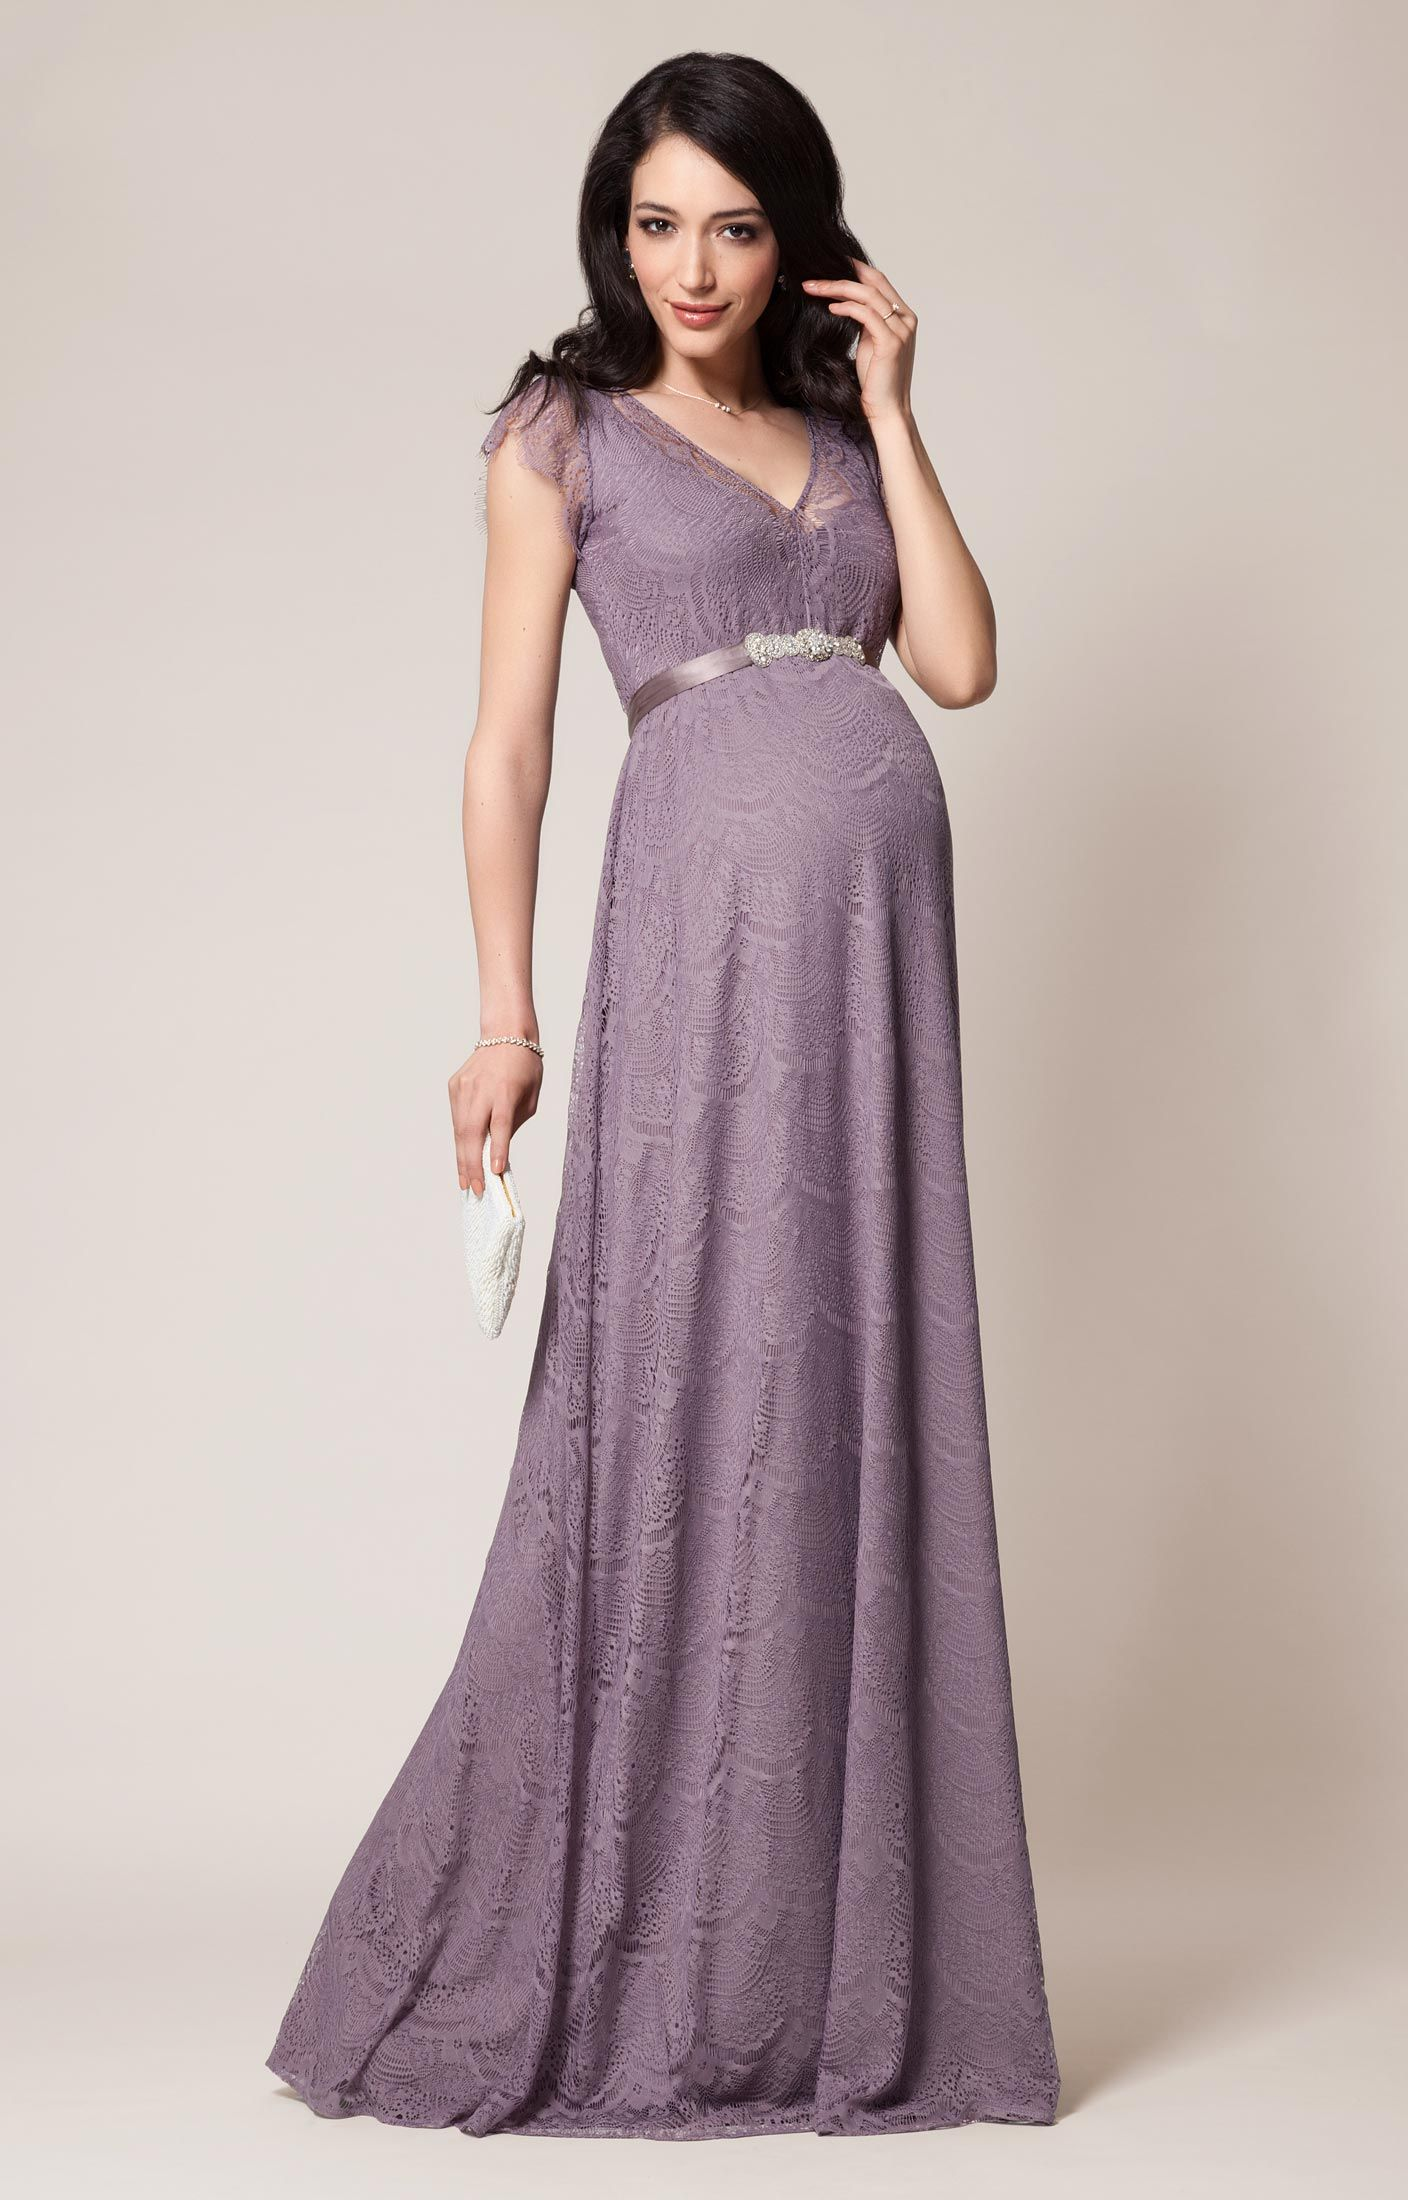 Kristin gown long maternity gowns wisteria and romantic maternity dresses ombrellifo Image collections